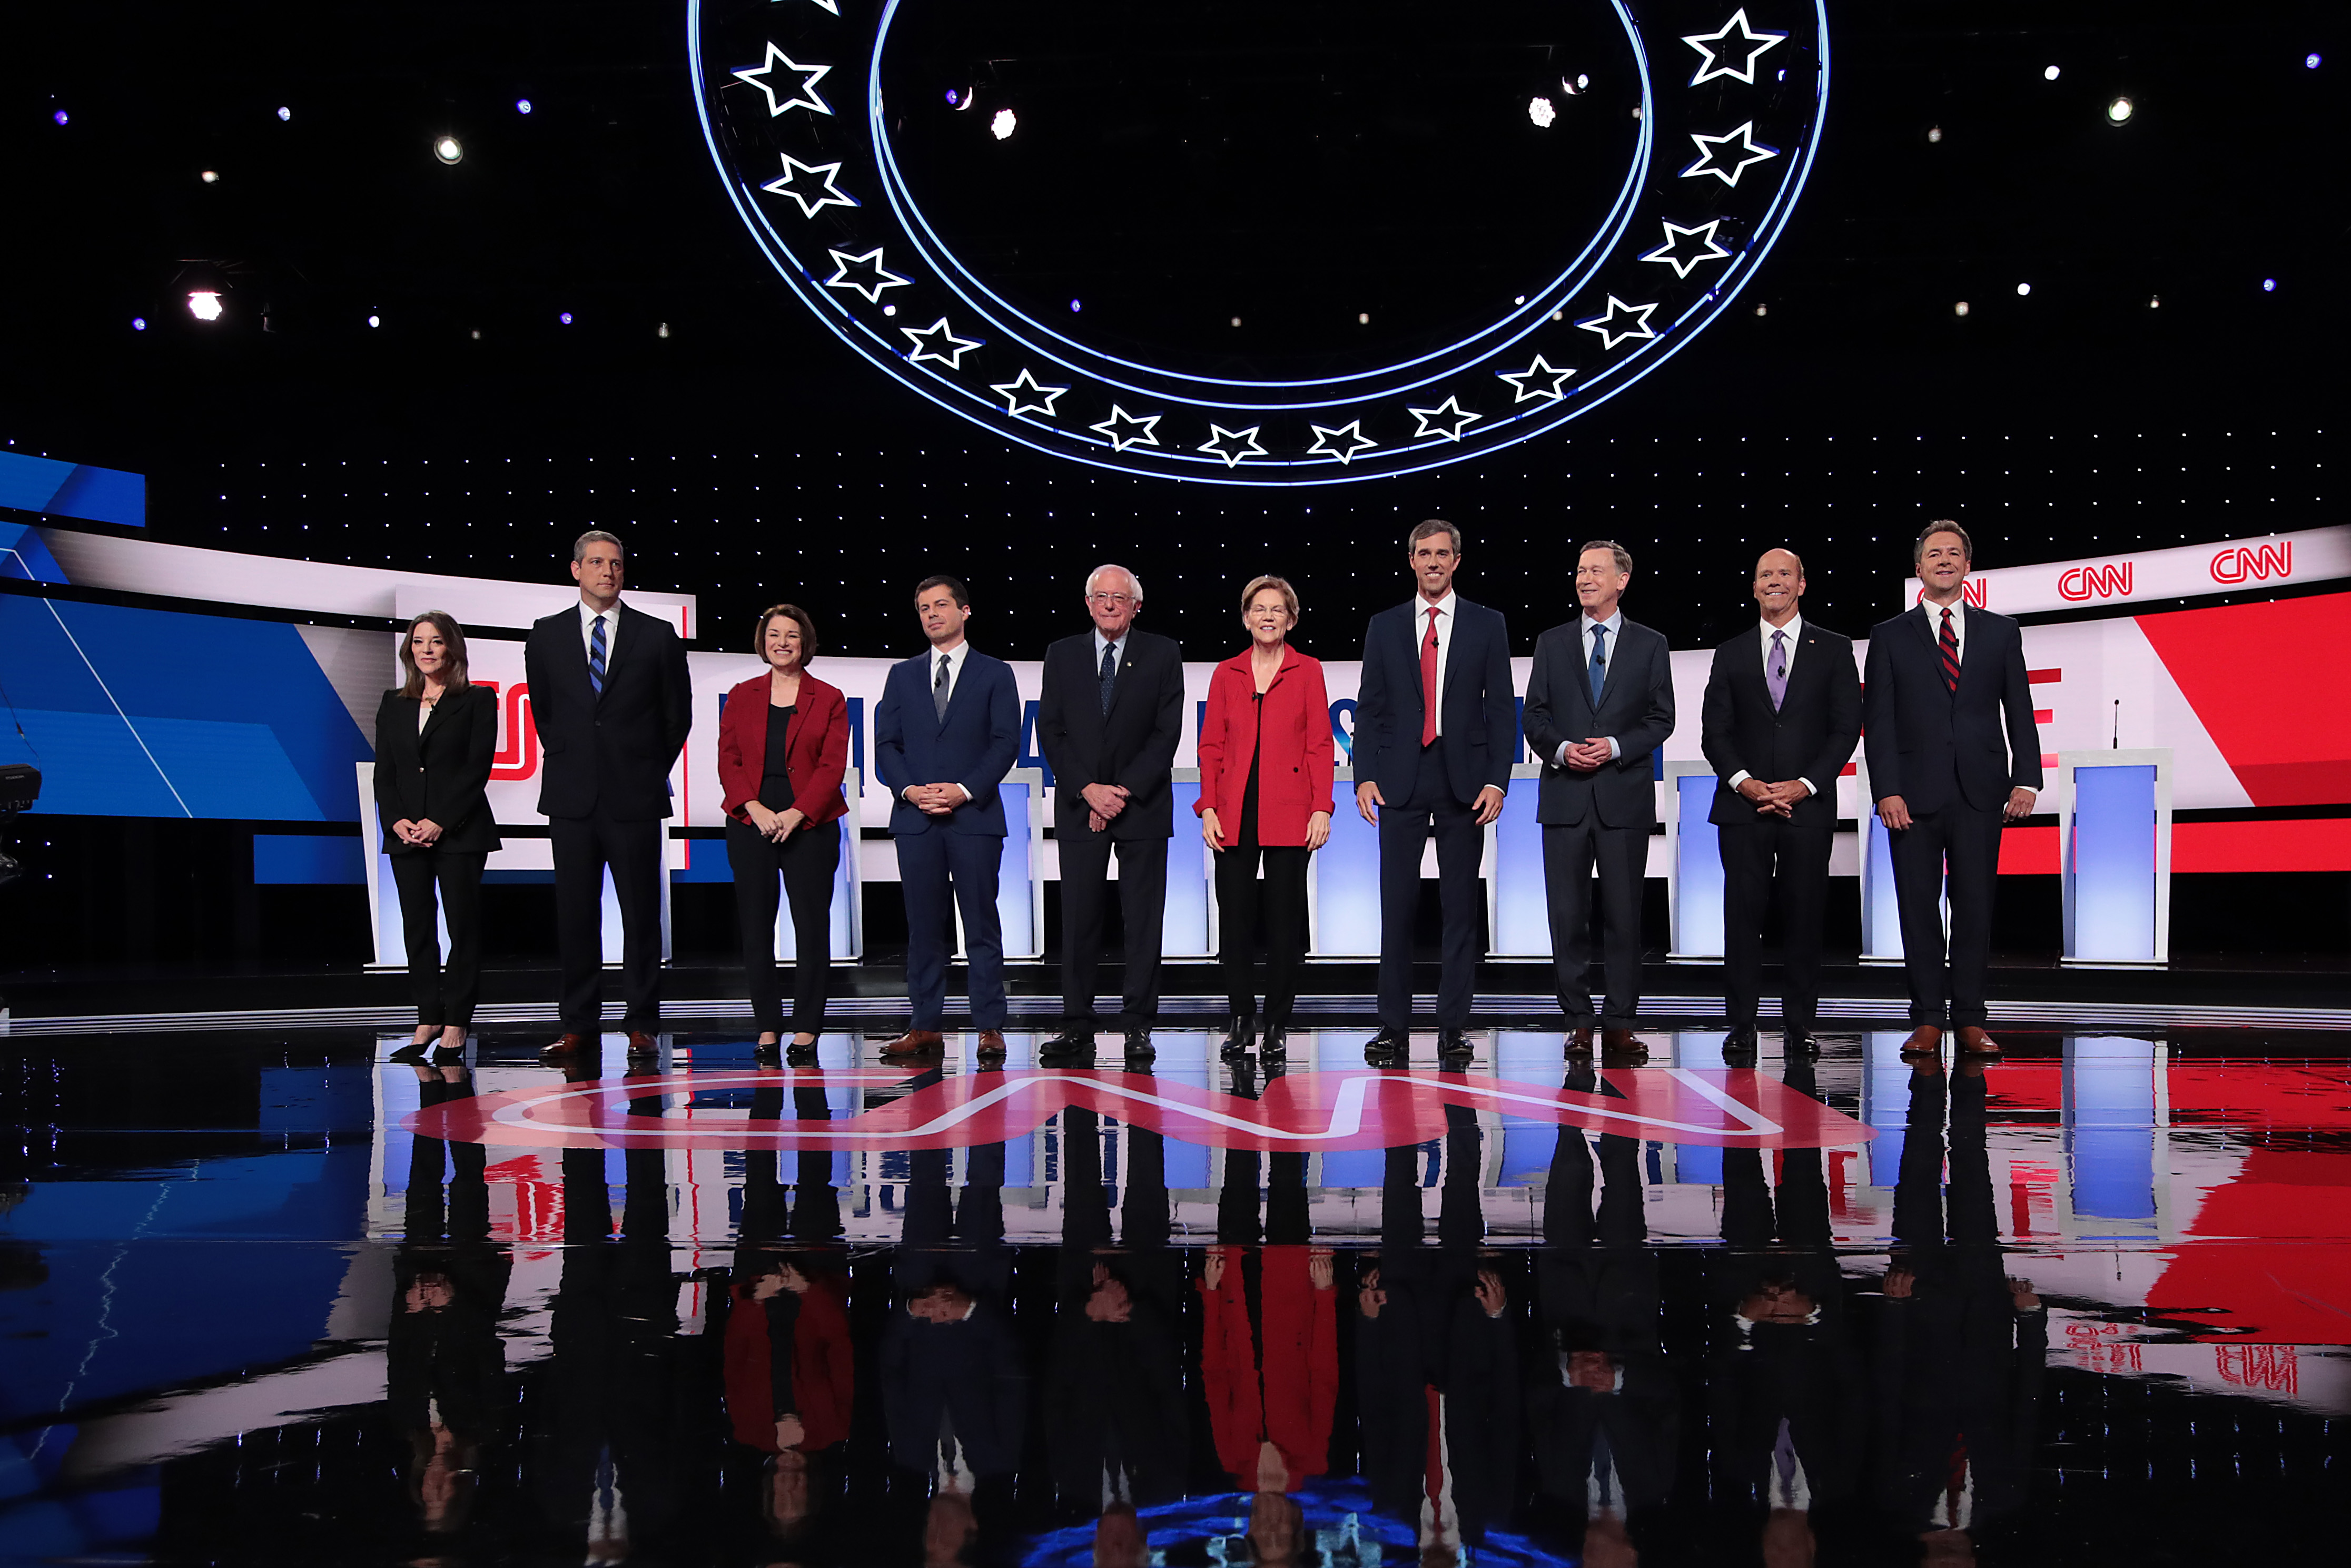 Democratic presidential candidates Marianne Williamson, (L-R), Rep. Tim Ryan (D-OH), Sen. Amy Klobuchar (D-MN), Indiana Mayor Pete Buttigieg, Sen. Bernie Sanders (I-VT), Sen. Elizabeth Warren (D-MA), former Texas congressman Beto O'Rourke, former Colorado governor John Hickenlooper, former Maryland congressman John Delaney, and Montana Gov. Steve Bullock take the stage at the beginning of the Democratic Presidential Debate at the Fox Theatre July 30, 2019. (Scott Olson/Getty Images)